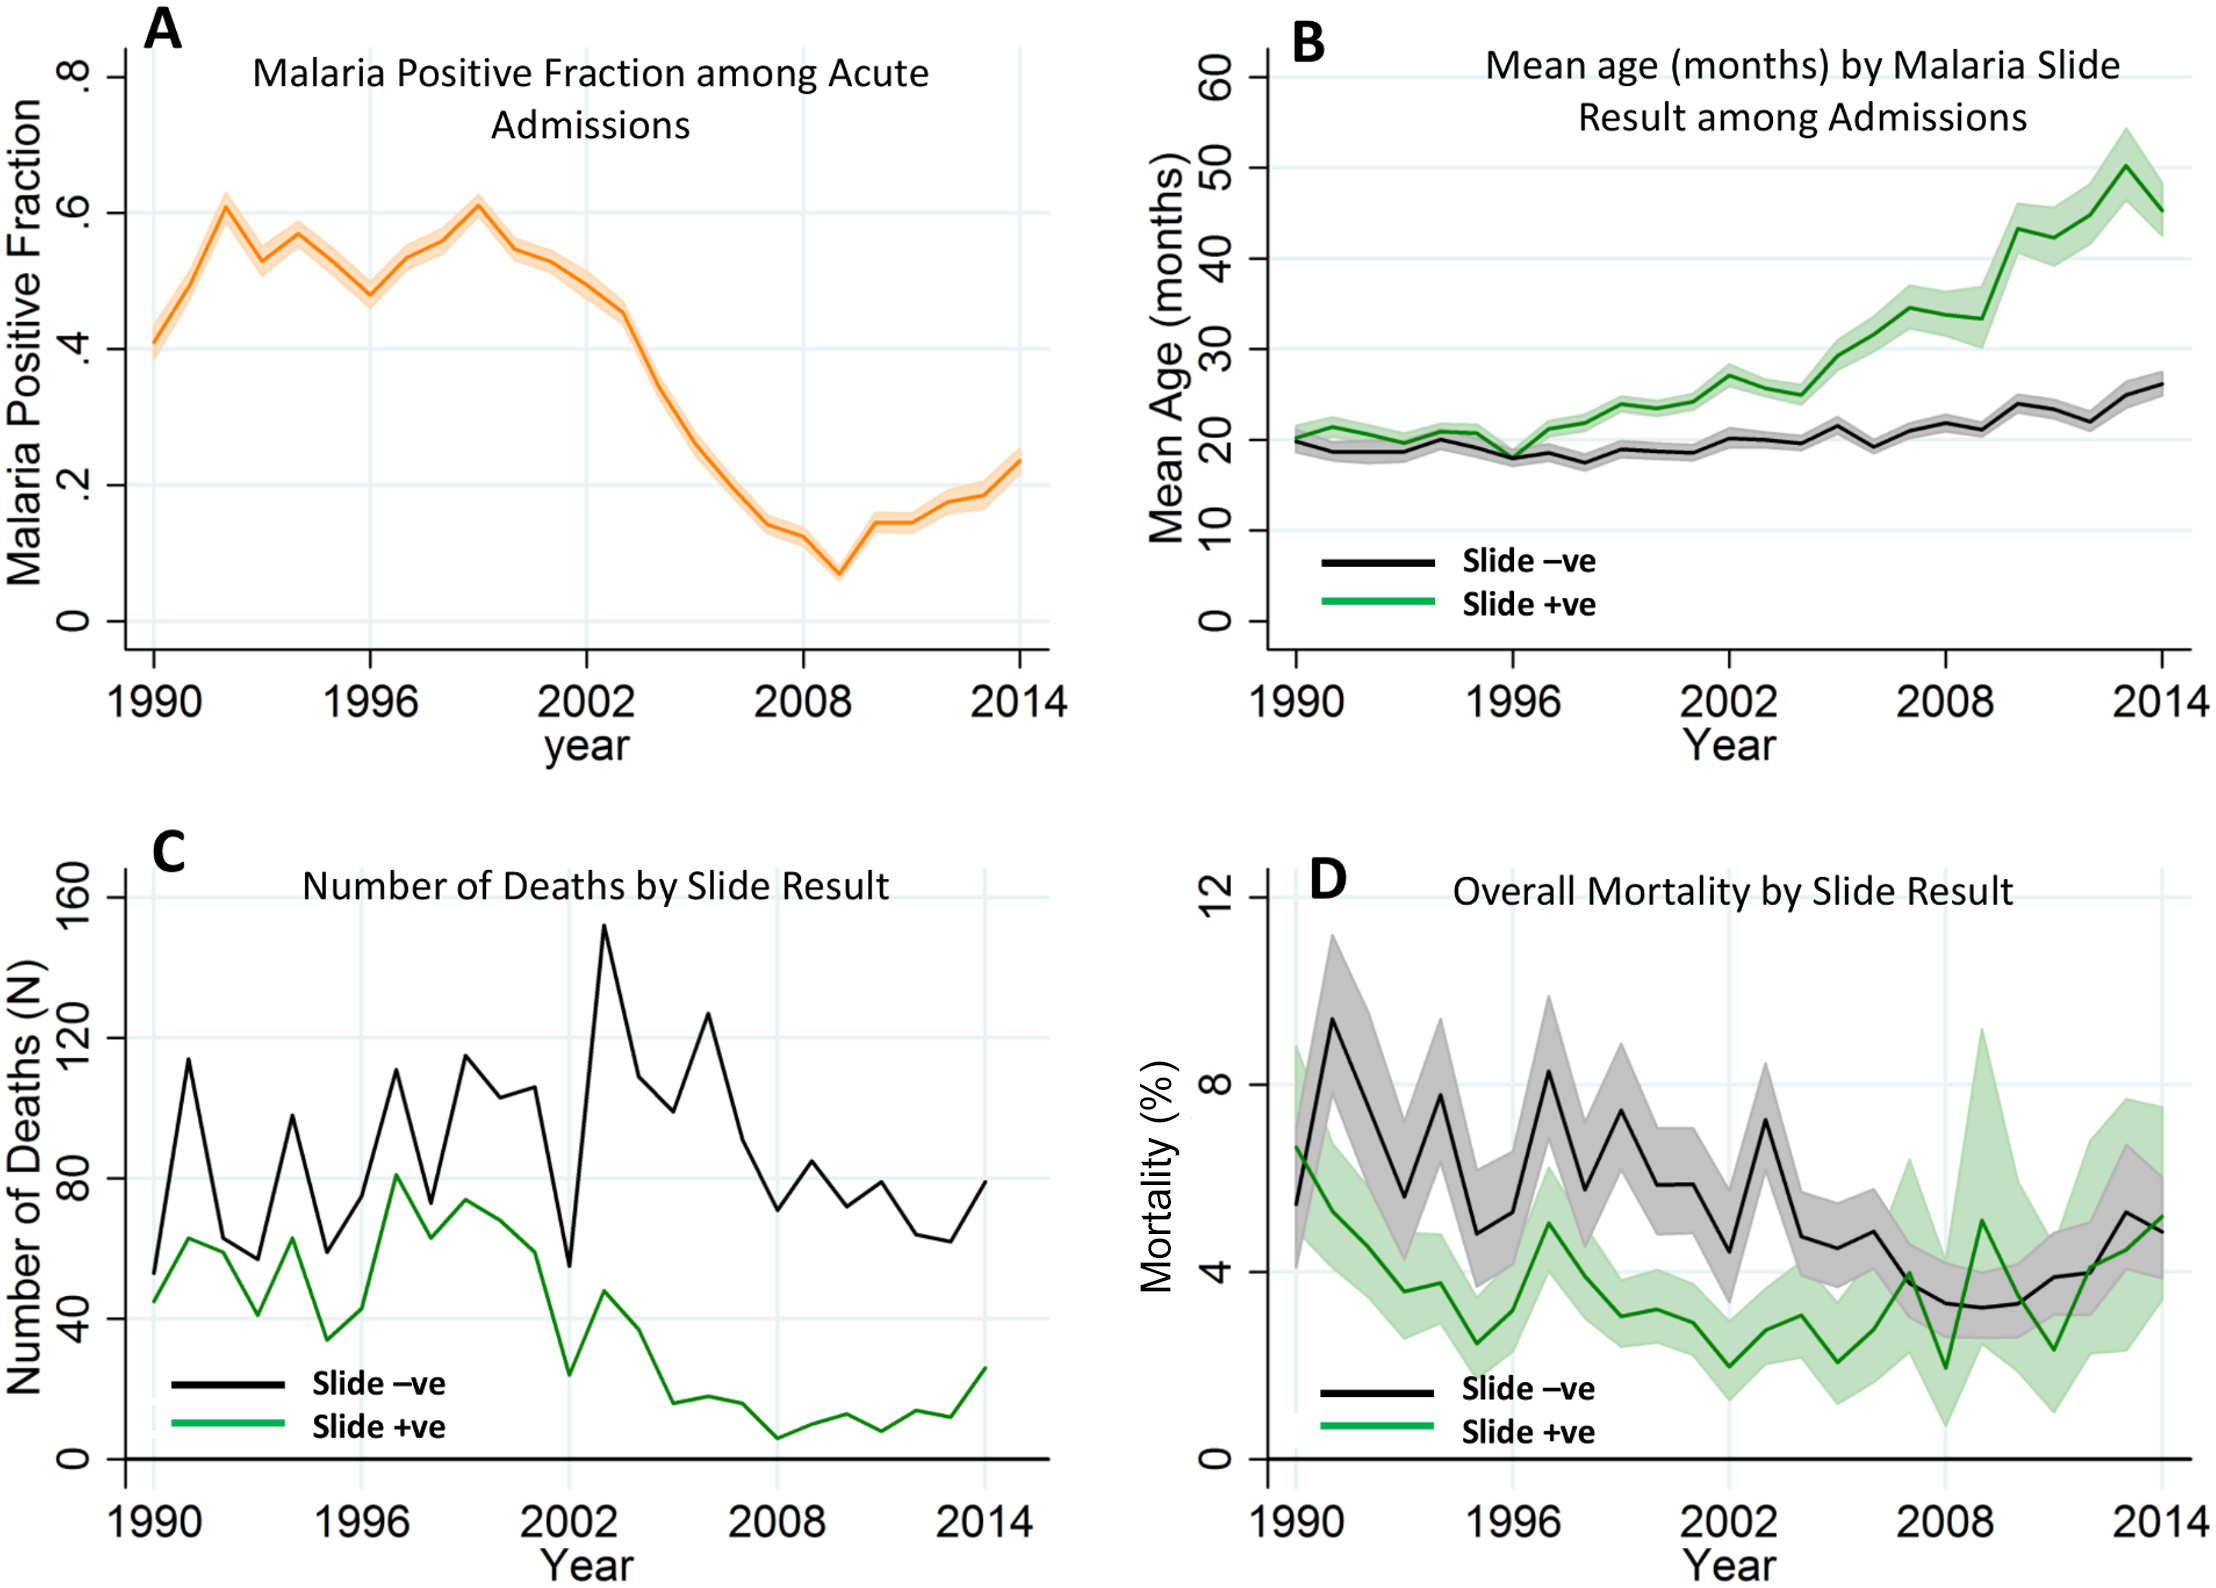 Temporal trends of malaria positive fraction (MPF), age of slide positivity, and mortality among acute admissions.